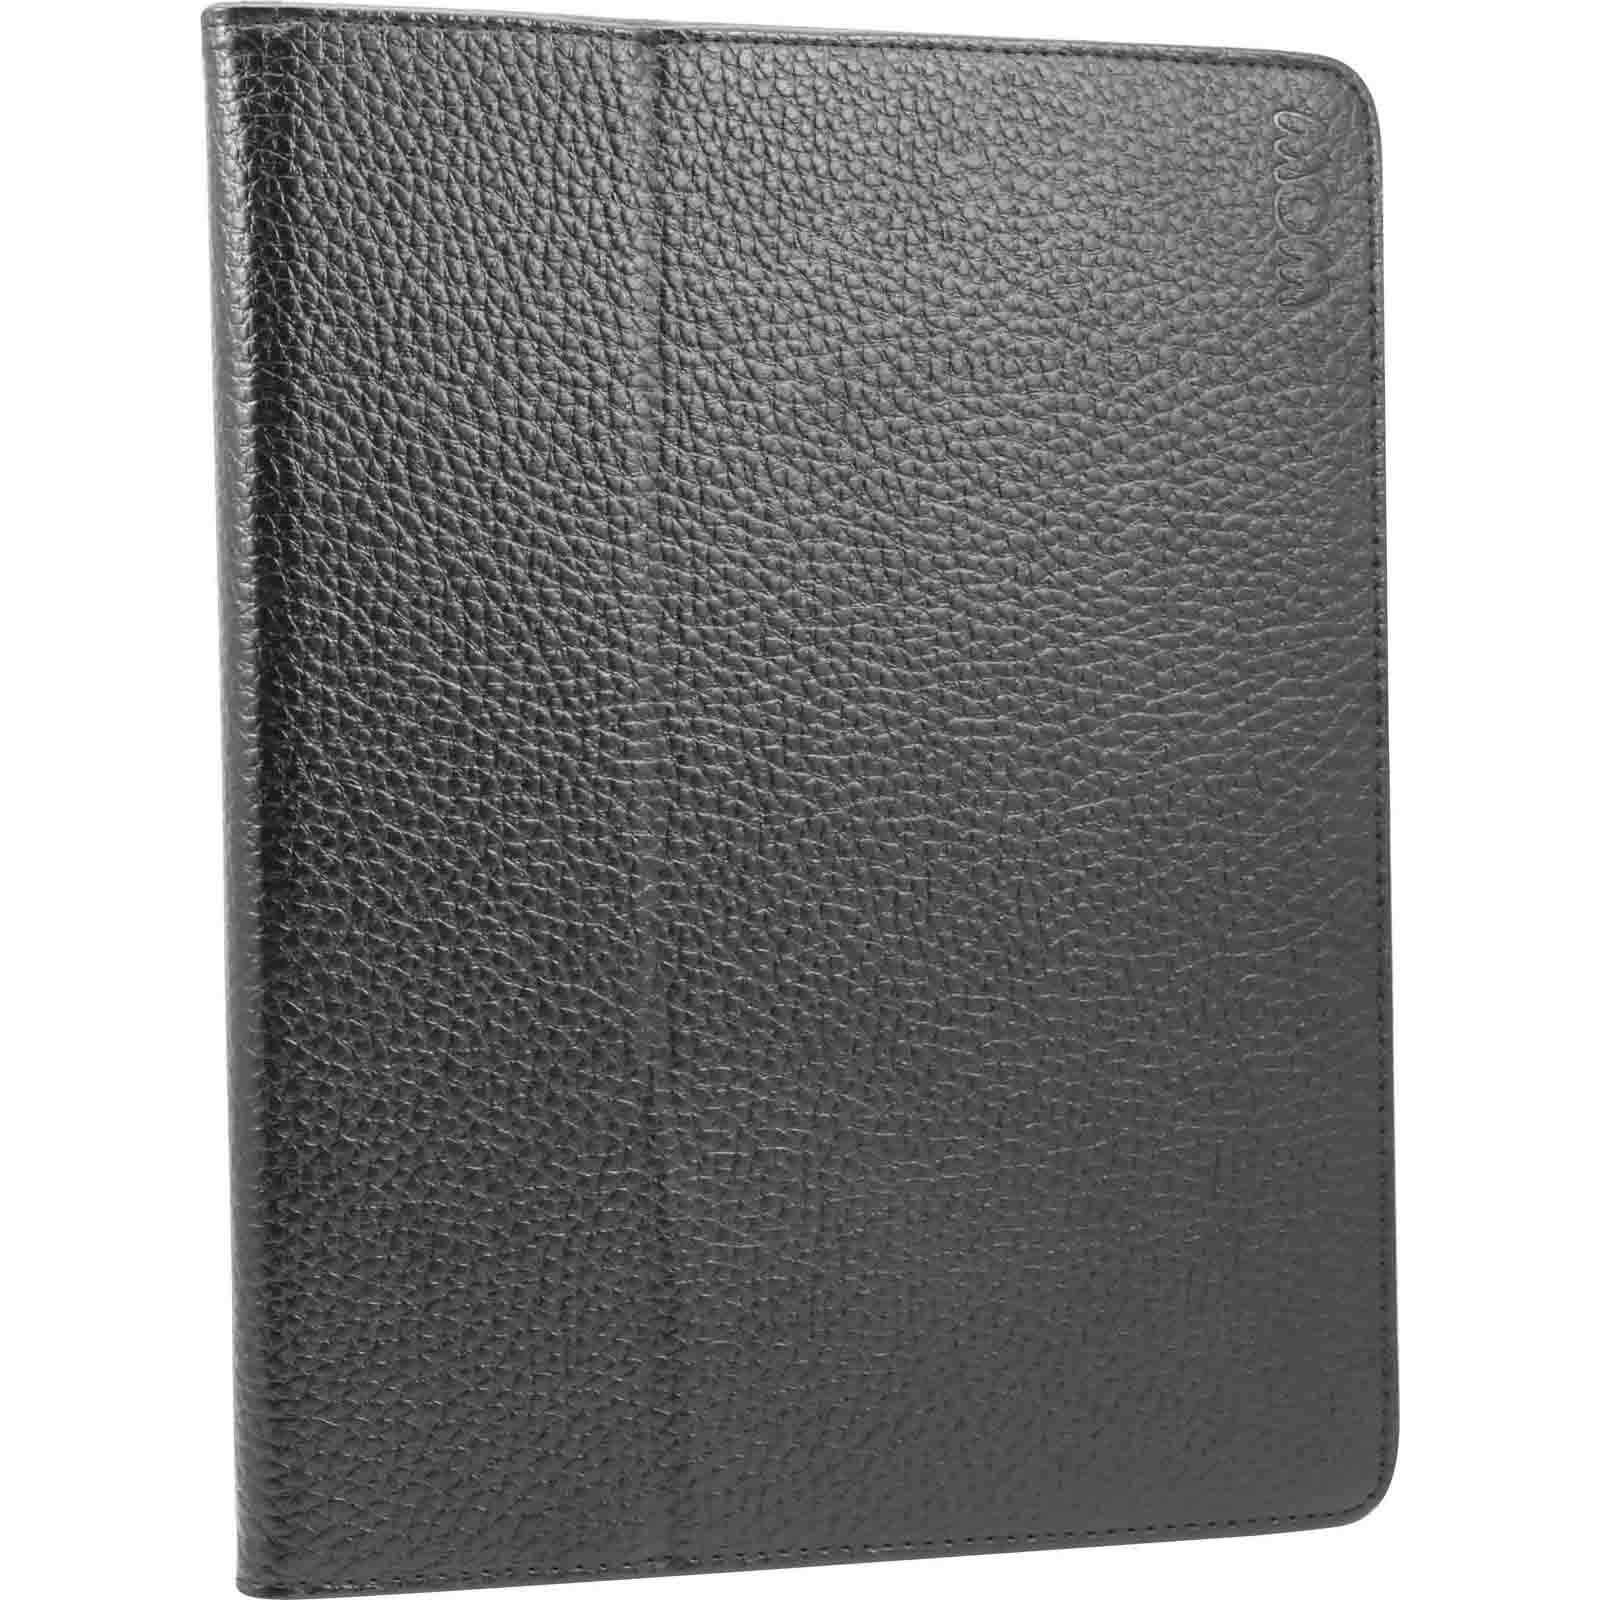 WOW Protective Case for iPad - Black